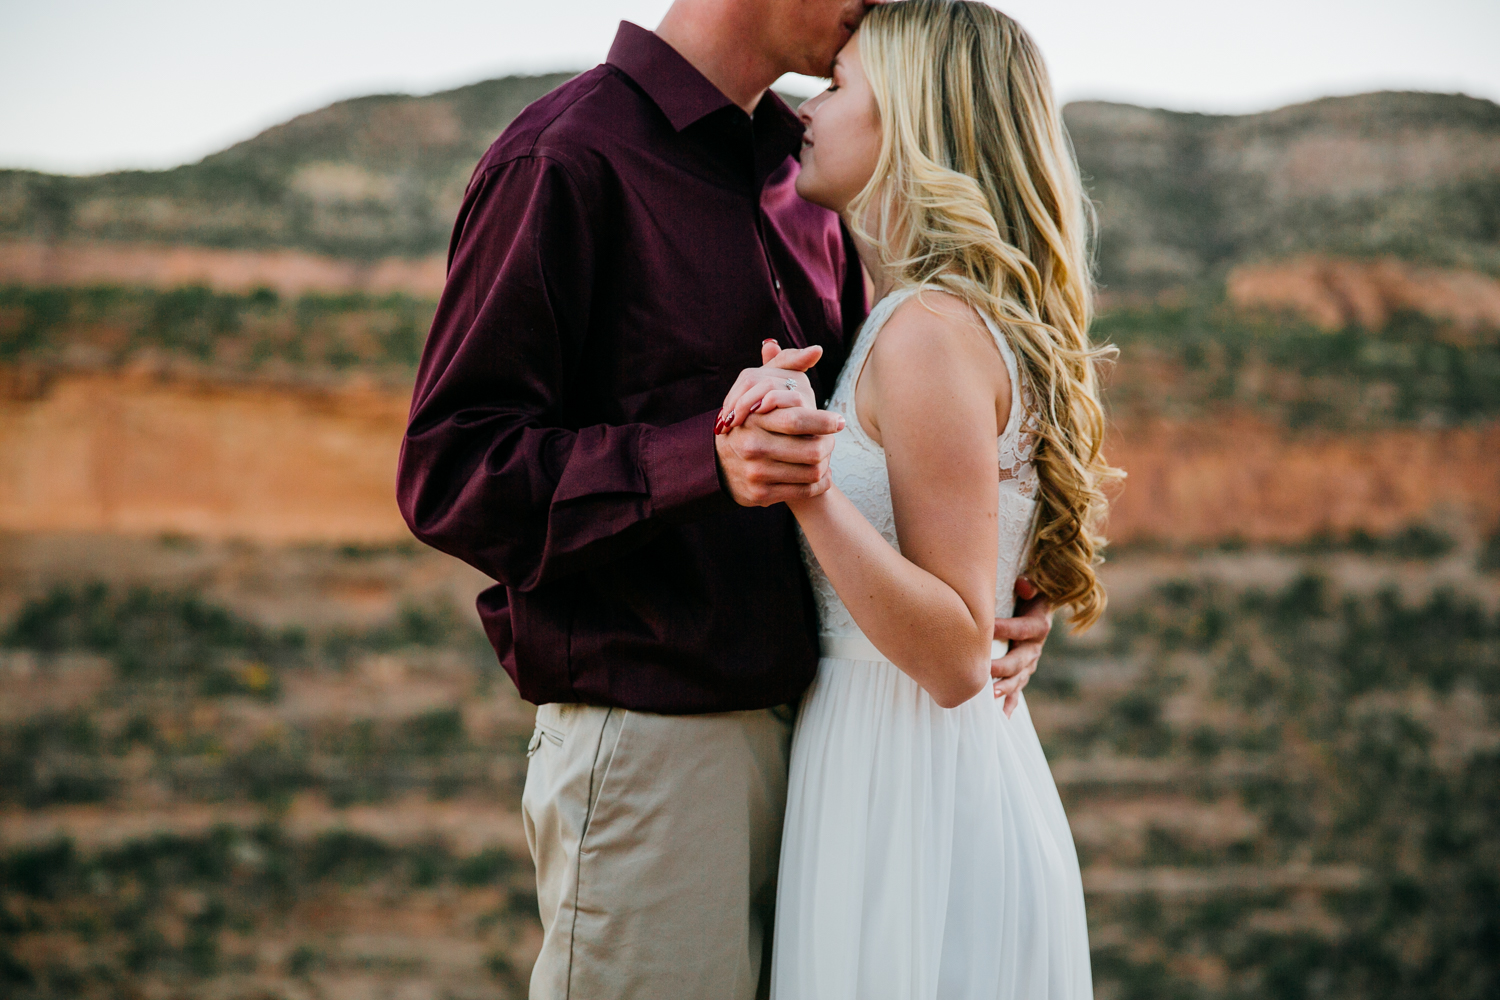 grand-junction-colorado-monument-wedding-photographer-engagements-37.jpg